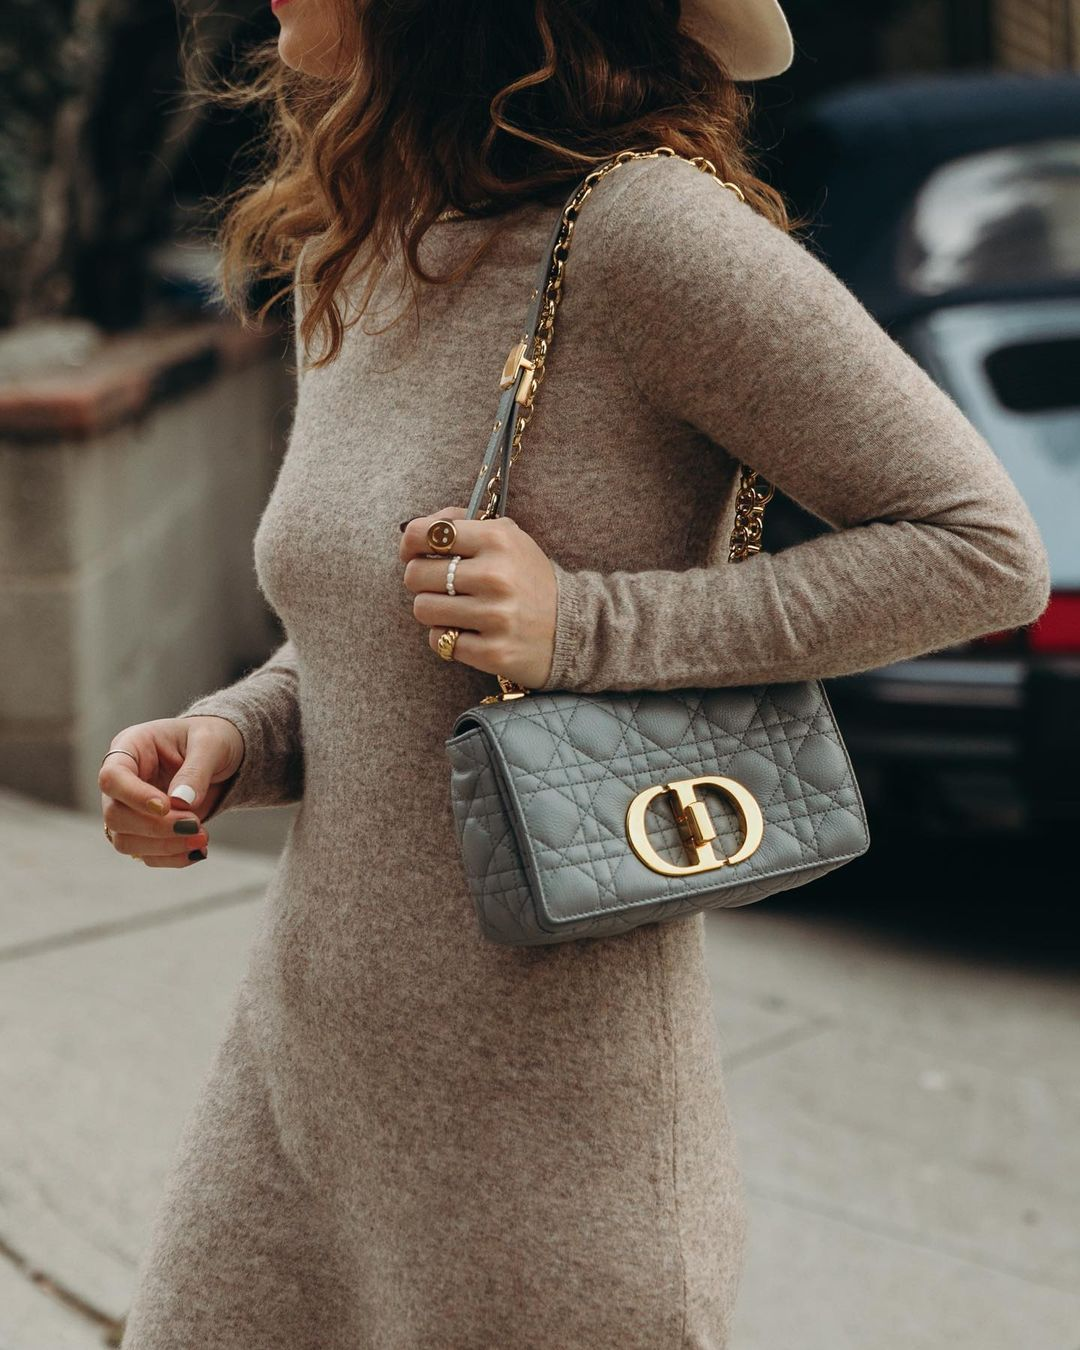 sara-escudero-dior-caro-bag-small-gray-instagram